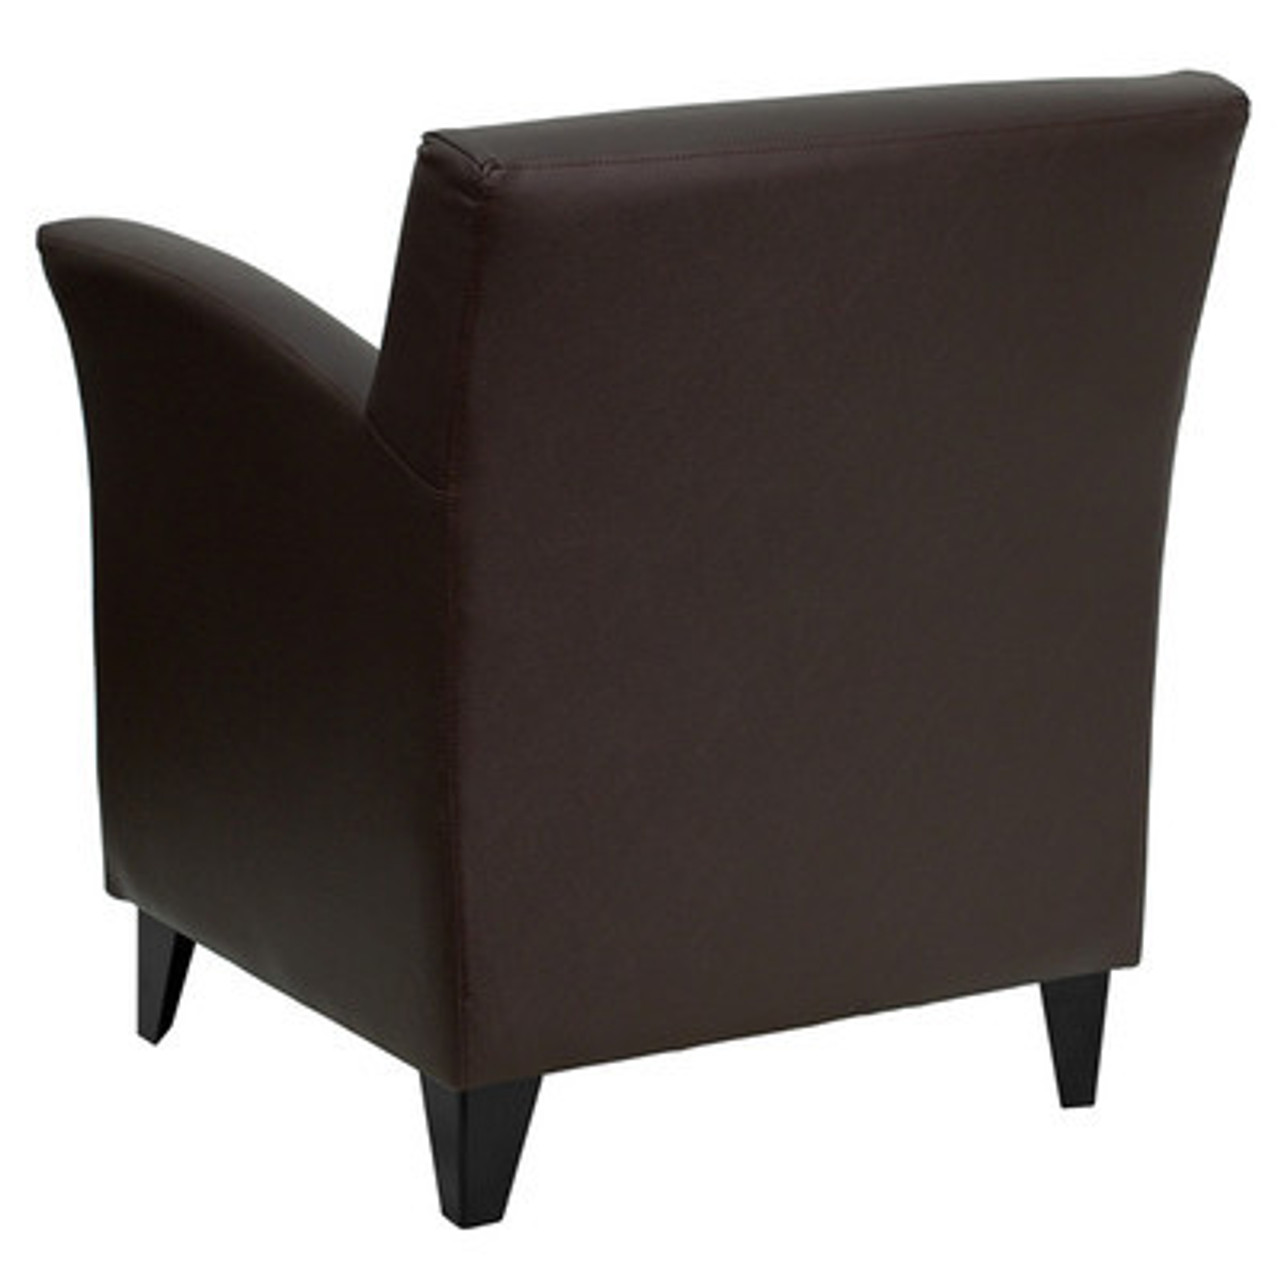 1pc Modern Leather Office Home Reception Guest Chair, FF-0484-12